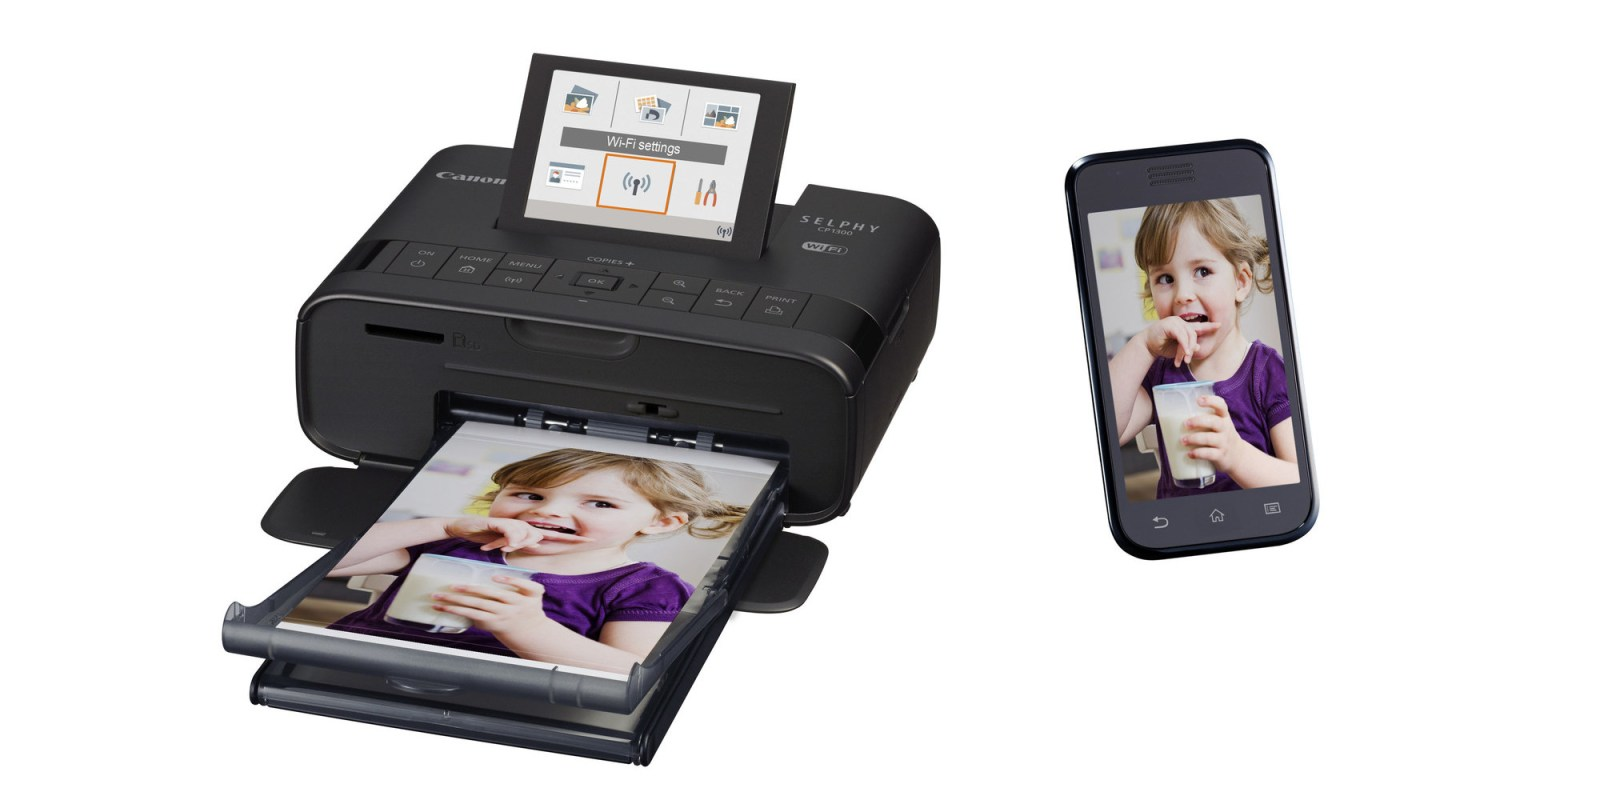 Canon unveils the latest gen SELPHY wireless printer with AirPrint & LCD display